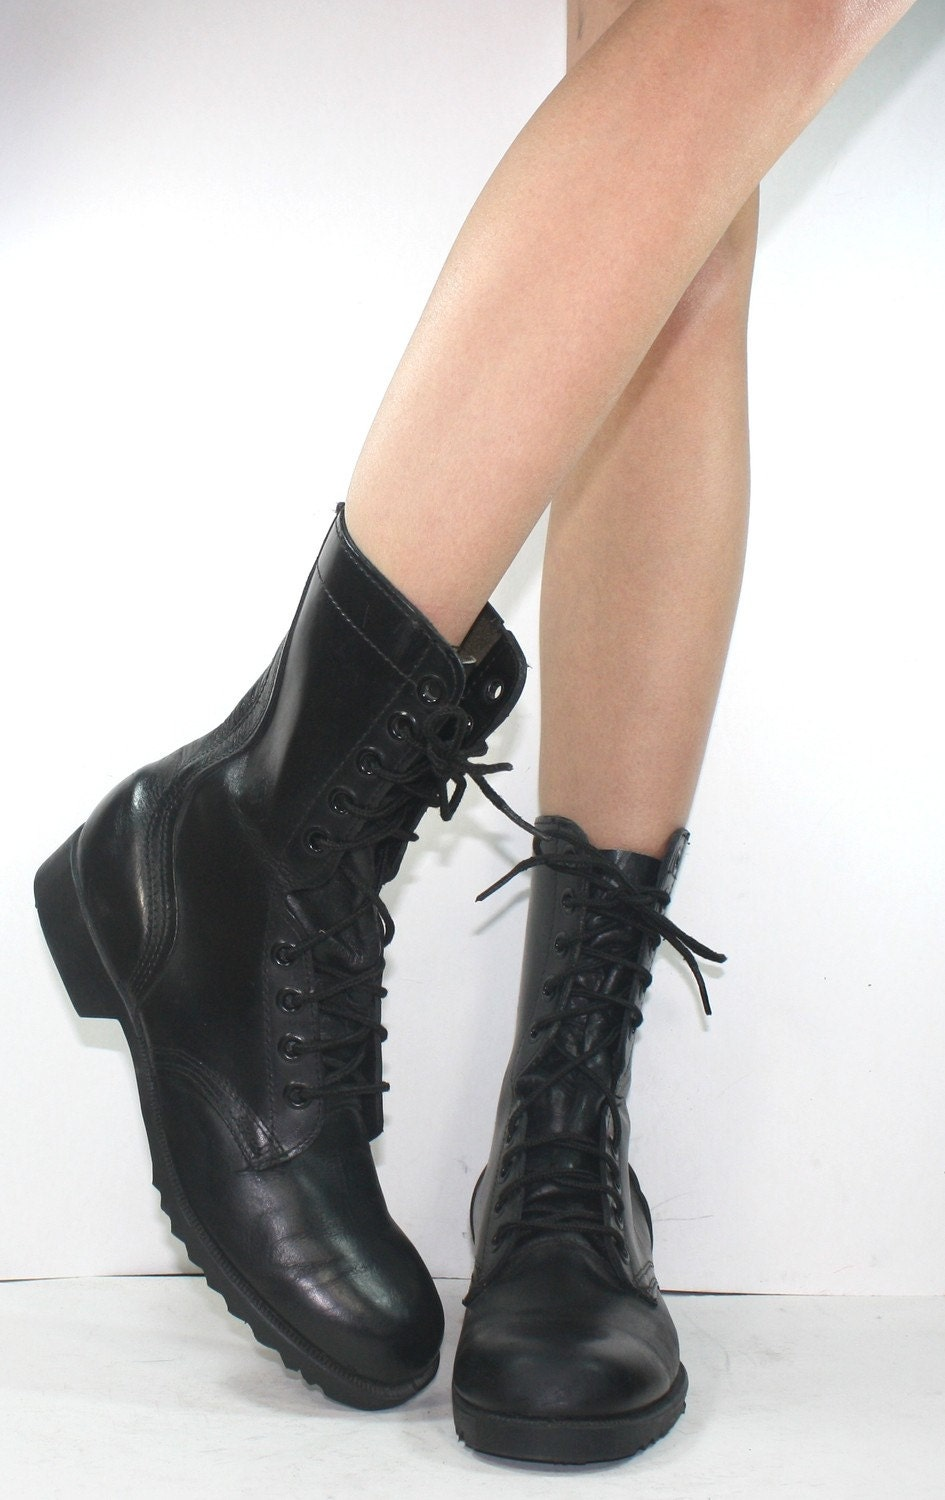 Vintage grunge granny military army COMBAT boot womens black lace up 8.5 A N